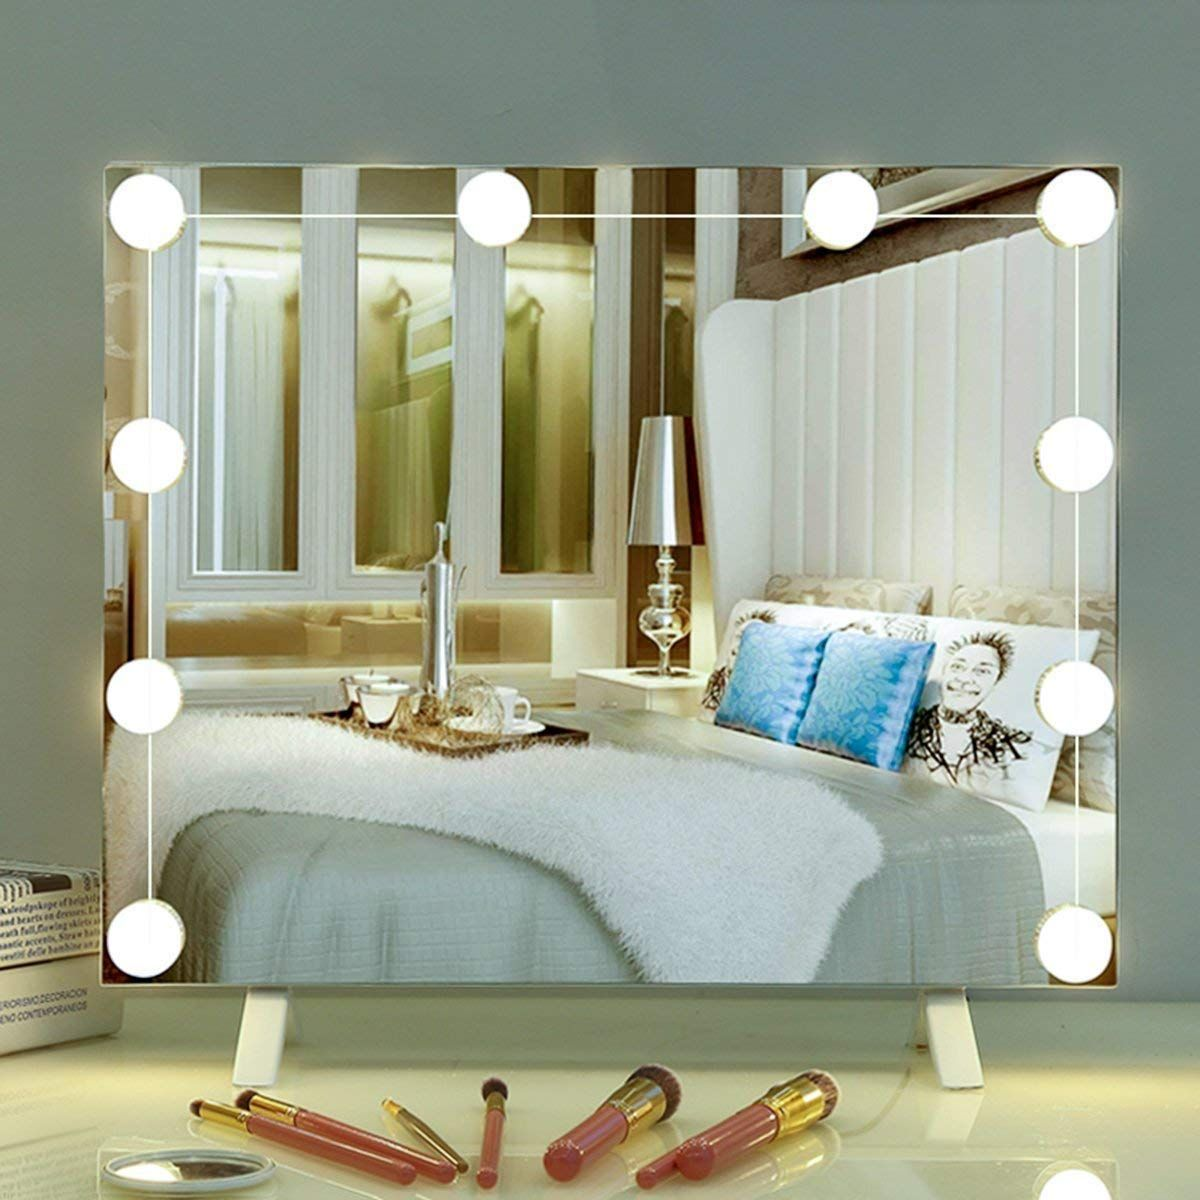 24 99 Makeup Mirror Light Bulb Yunlights Hollywood Style Led Vanity Mirror Lights Kit Wit Mirror With Lights Bathroom Mirror Lights Makeup Mirror With Lights